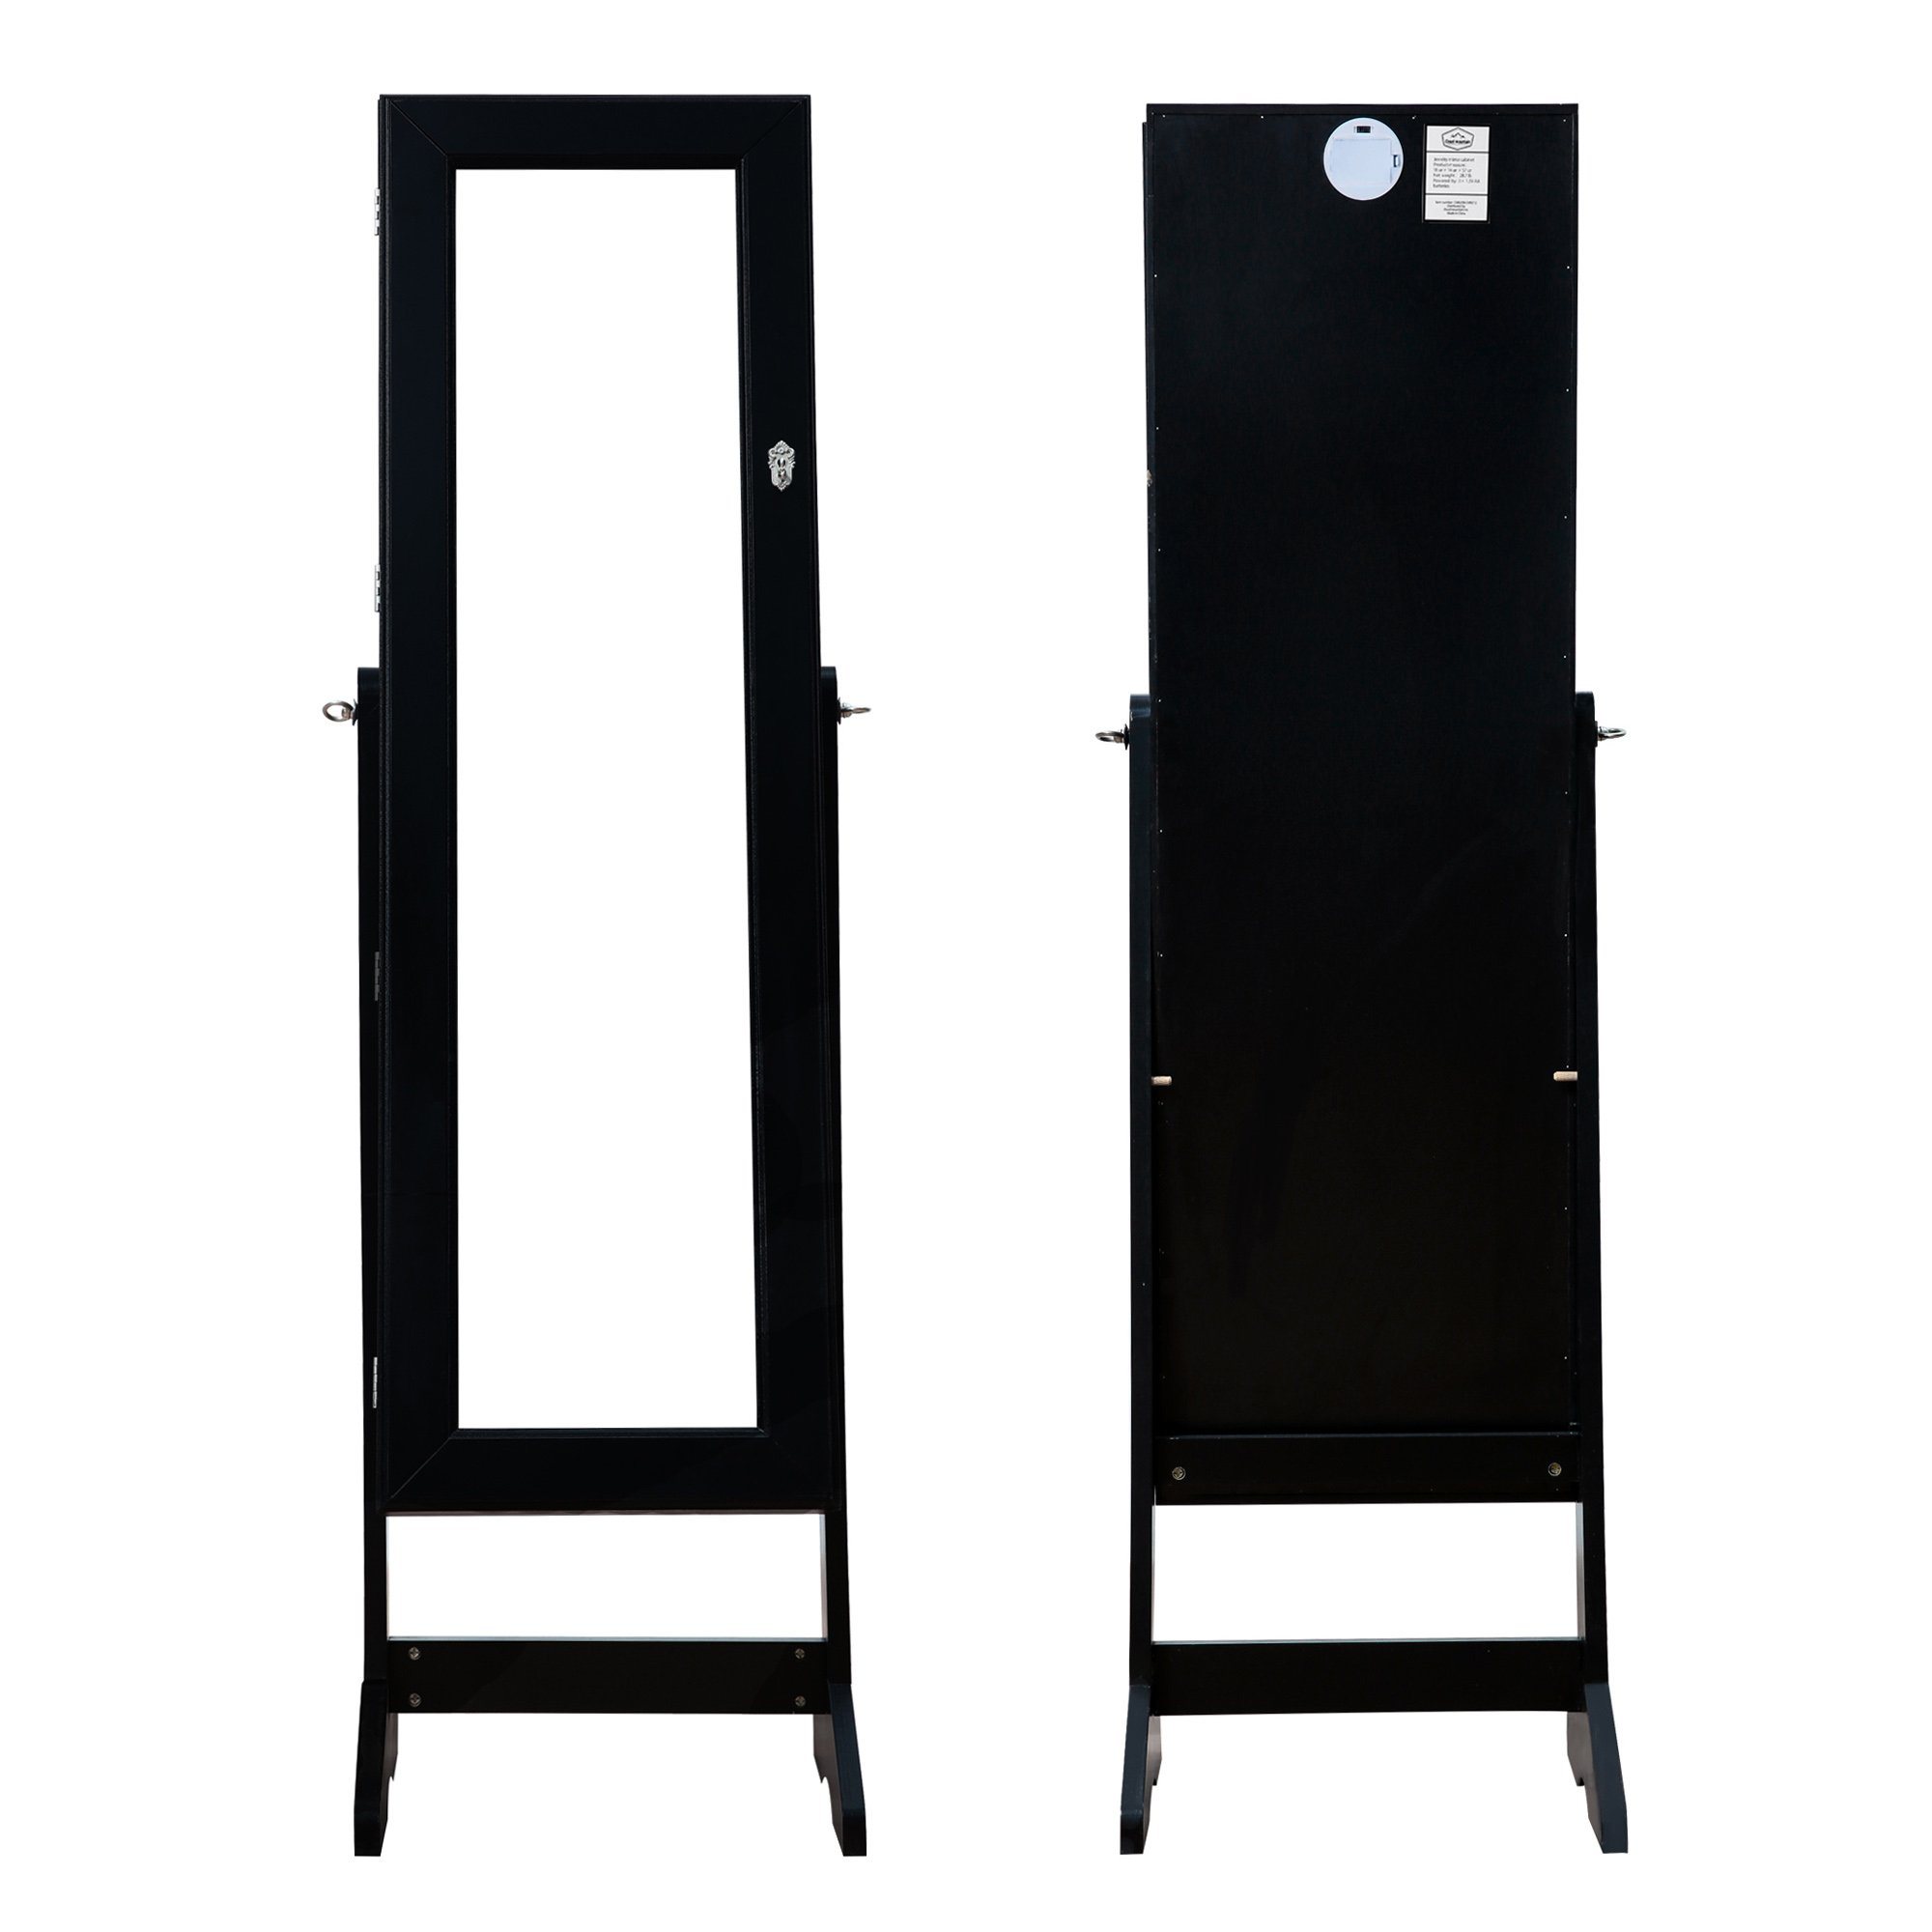 639a0add2 Cloud Mountain Mirrored Jewelry Cabinet Free-Standing Lockable Jewelry  Armoire Full Length Floor Tilting Jewelry